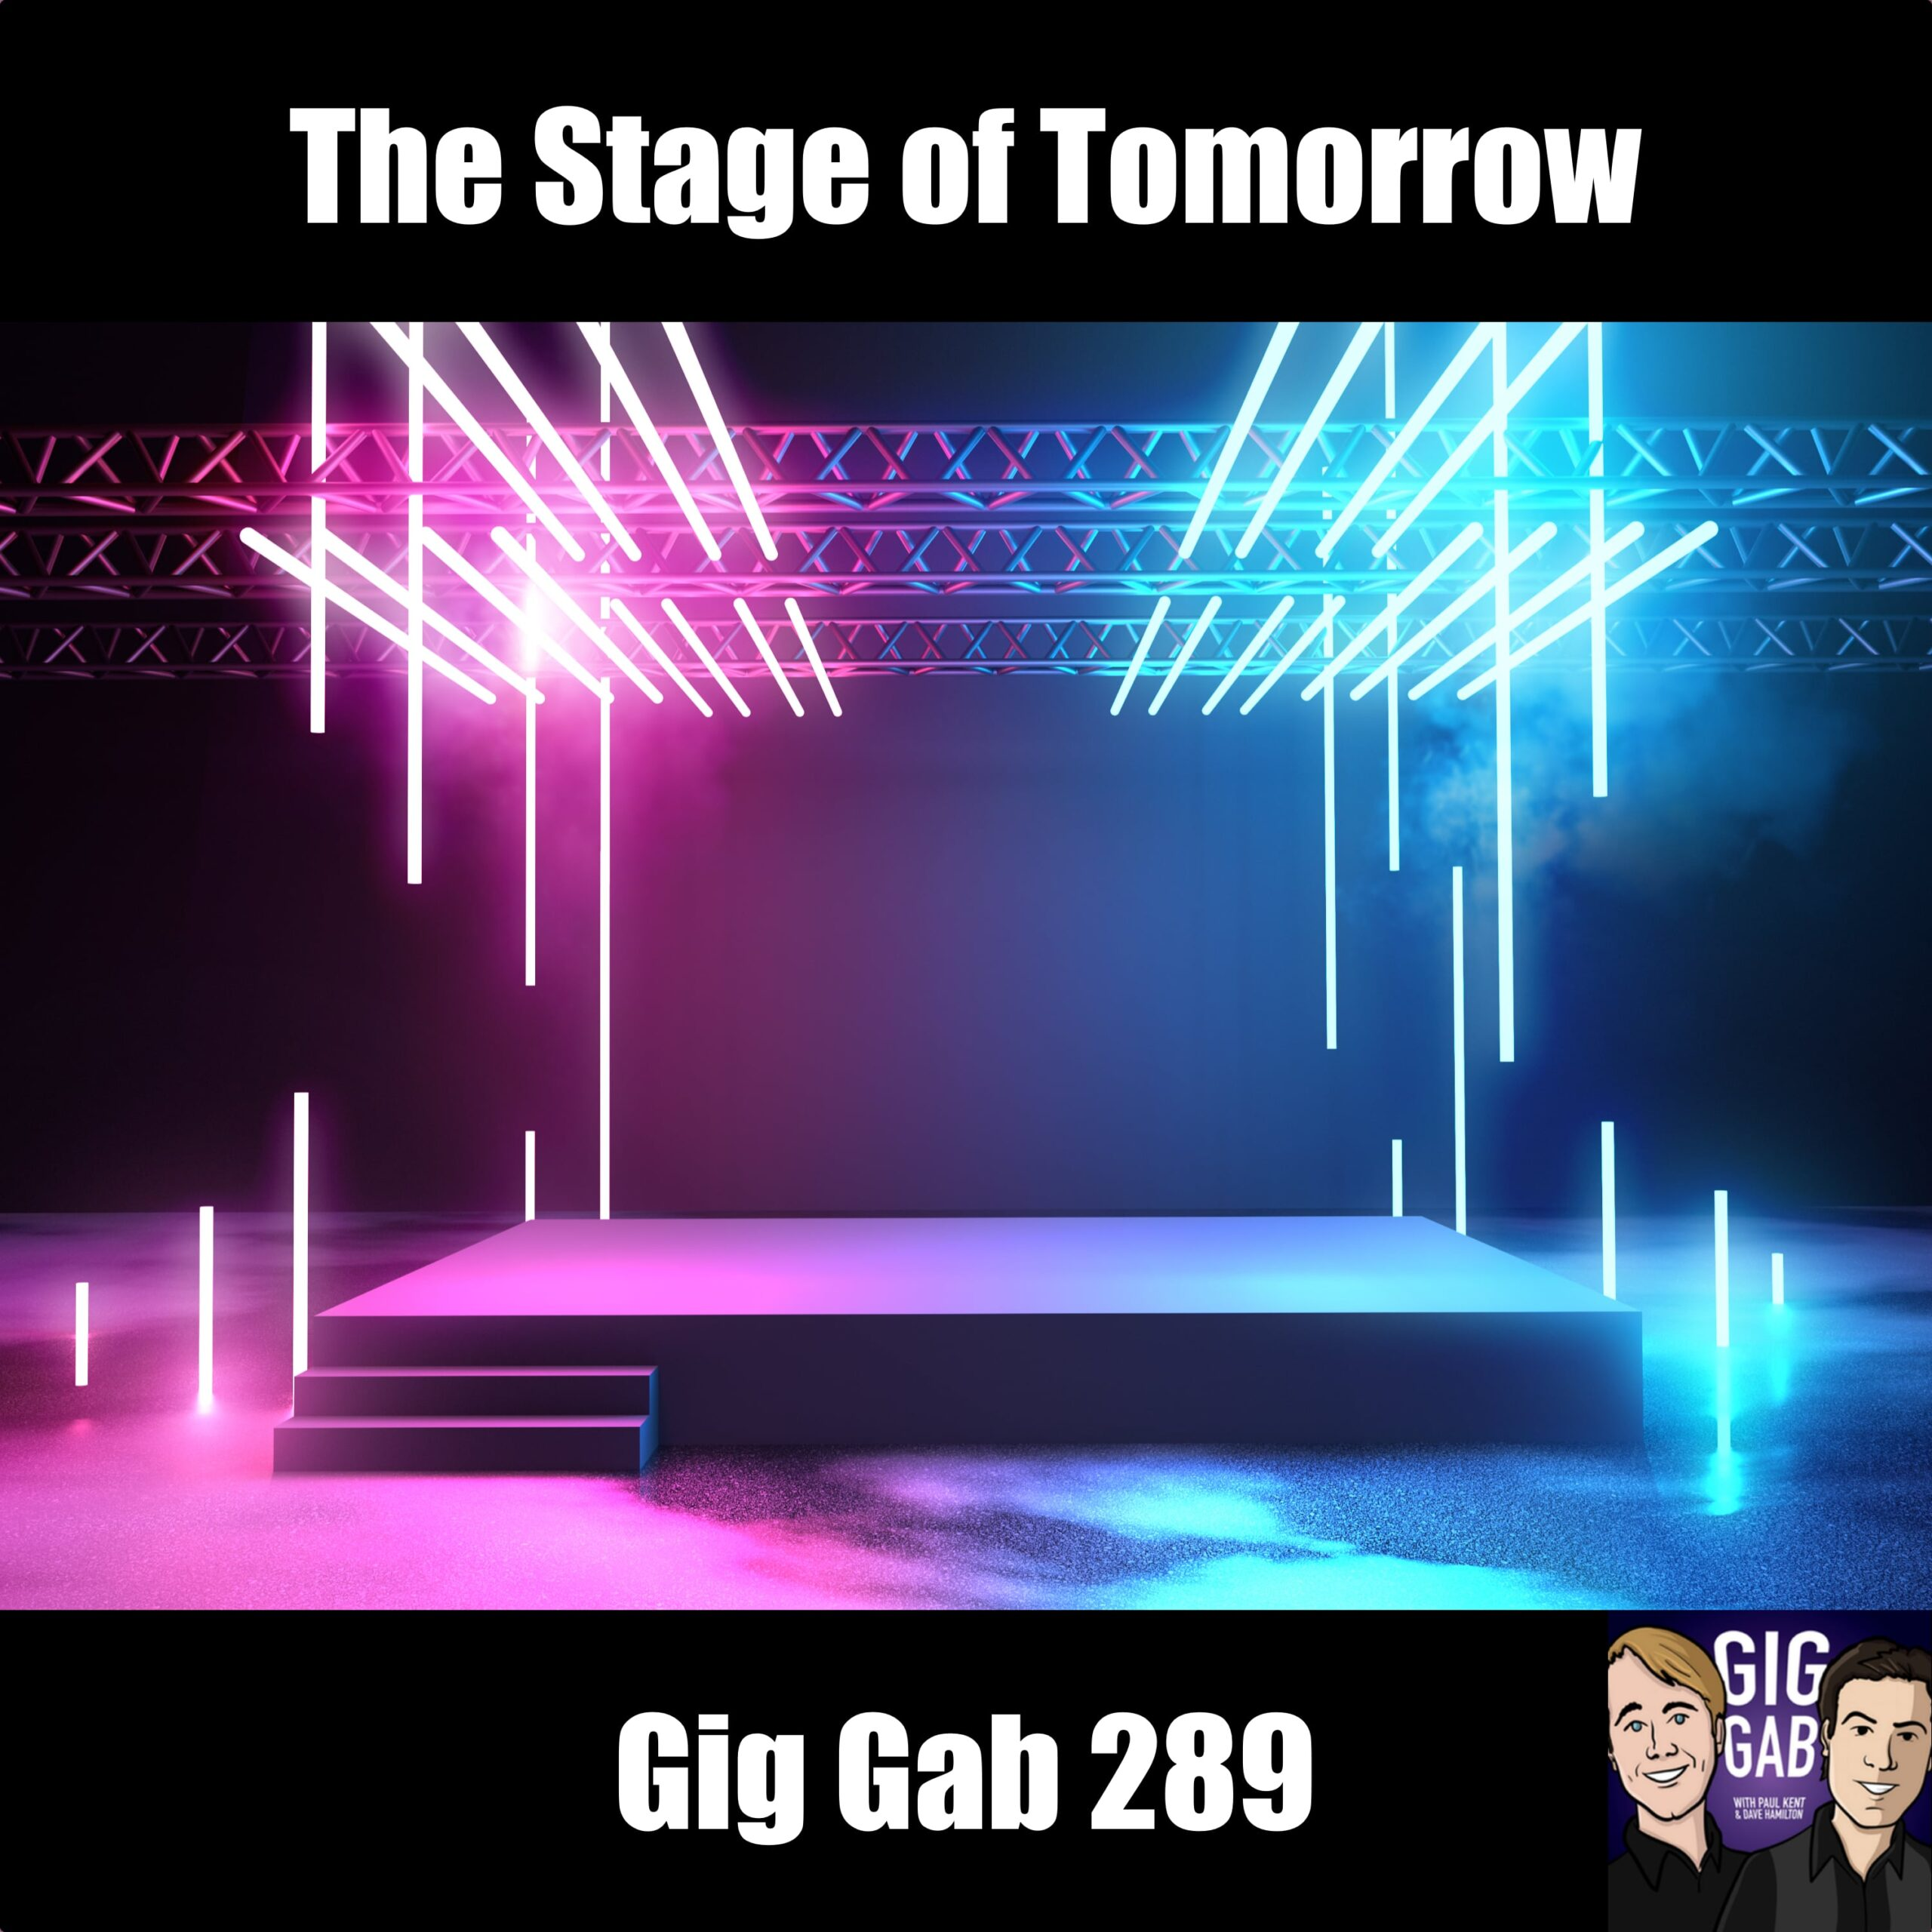 The Stage of Tomorrow - Gig Gab 289 episode image